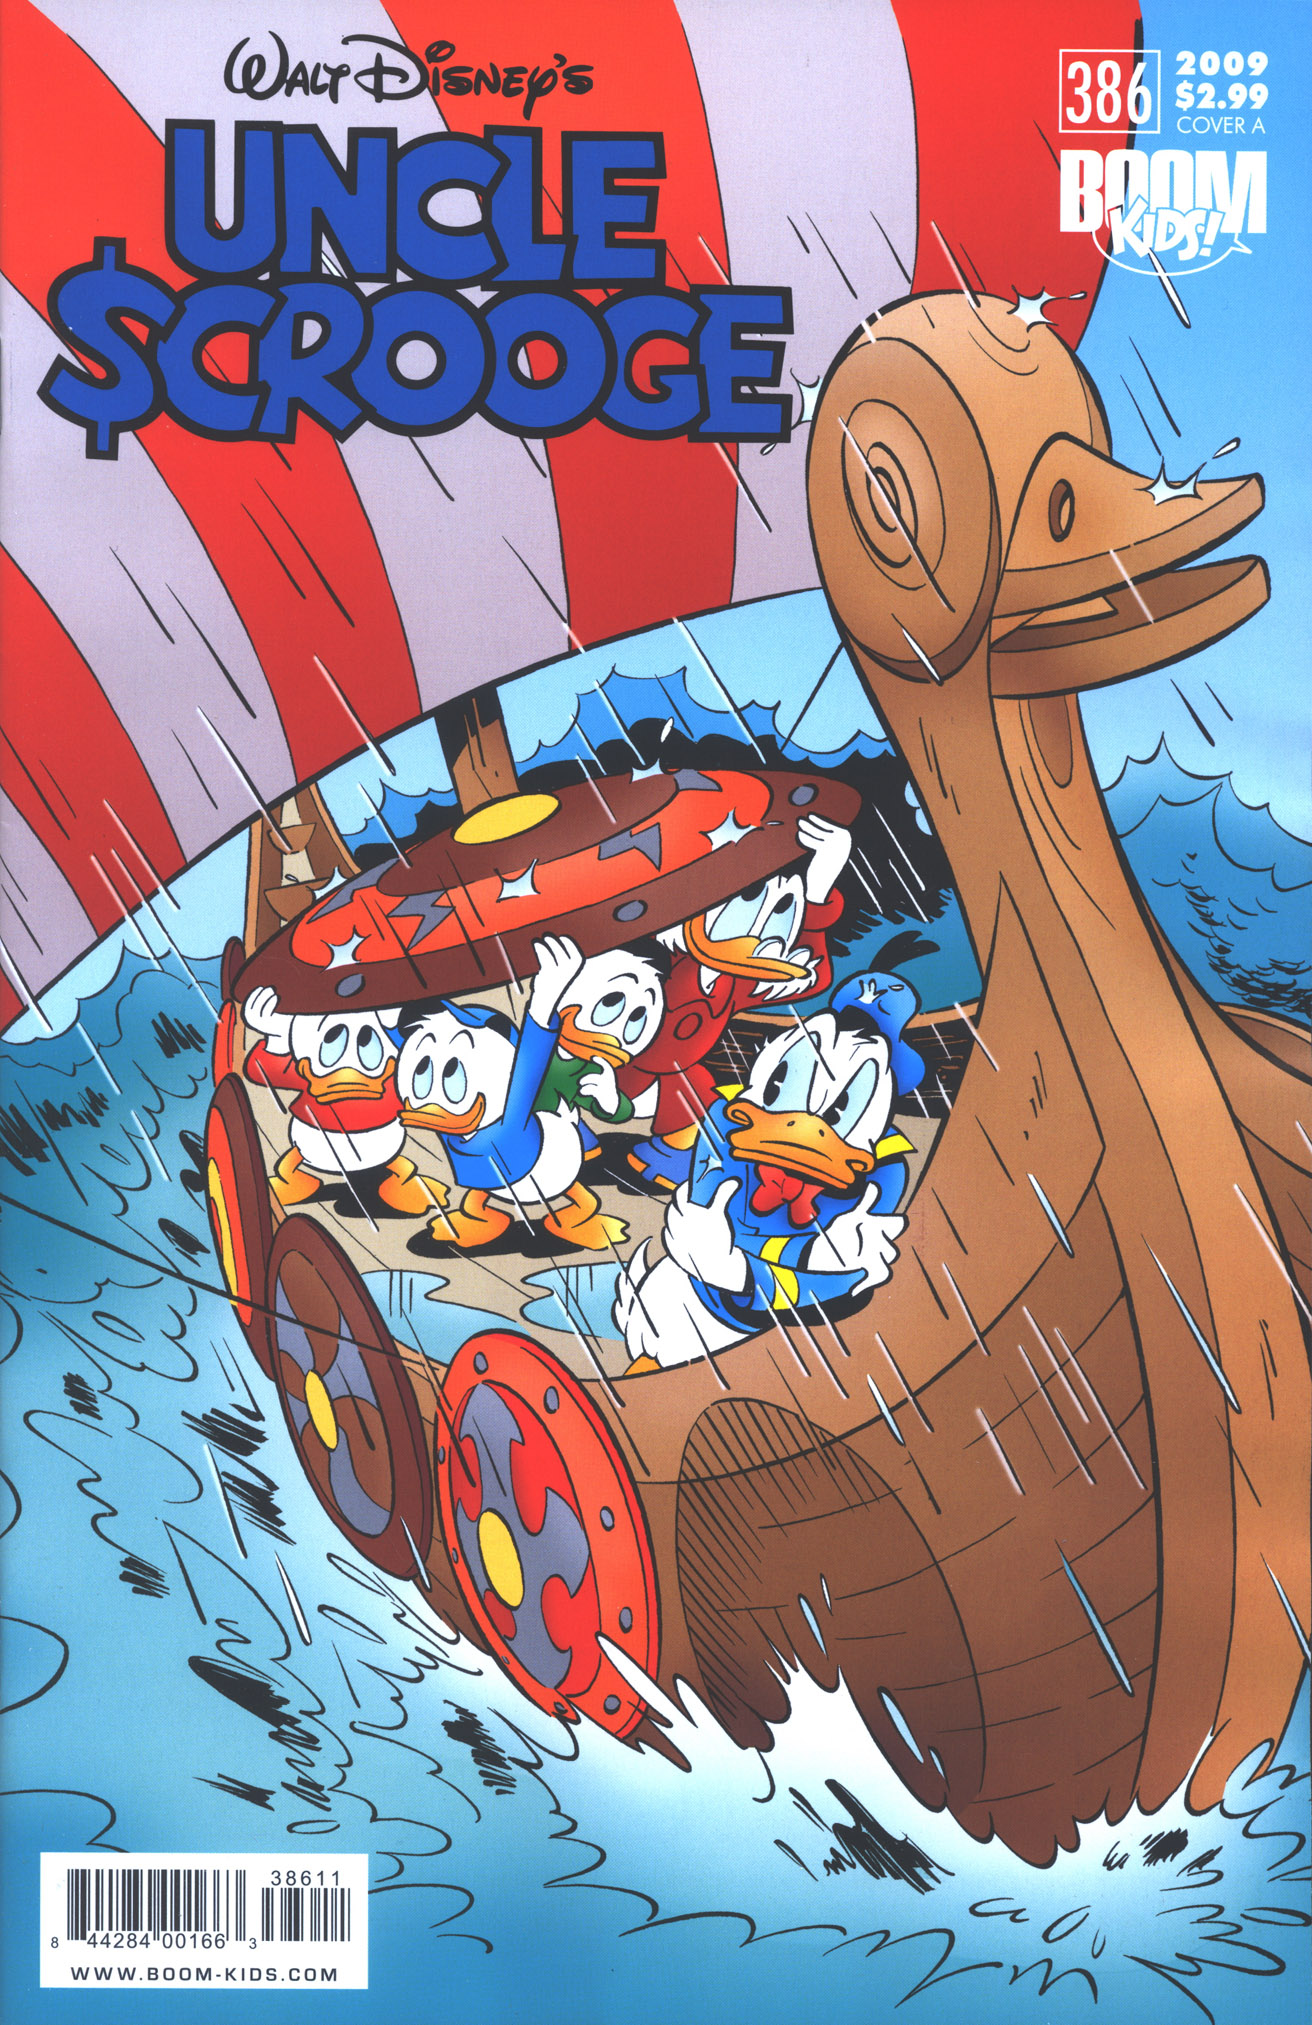 Read online Uncle Scrooge (1953) comic -  Issue #386 - 1